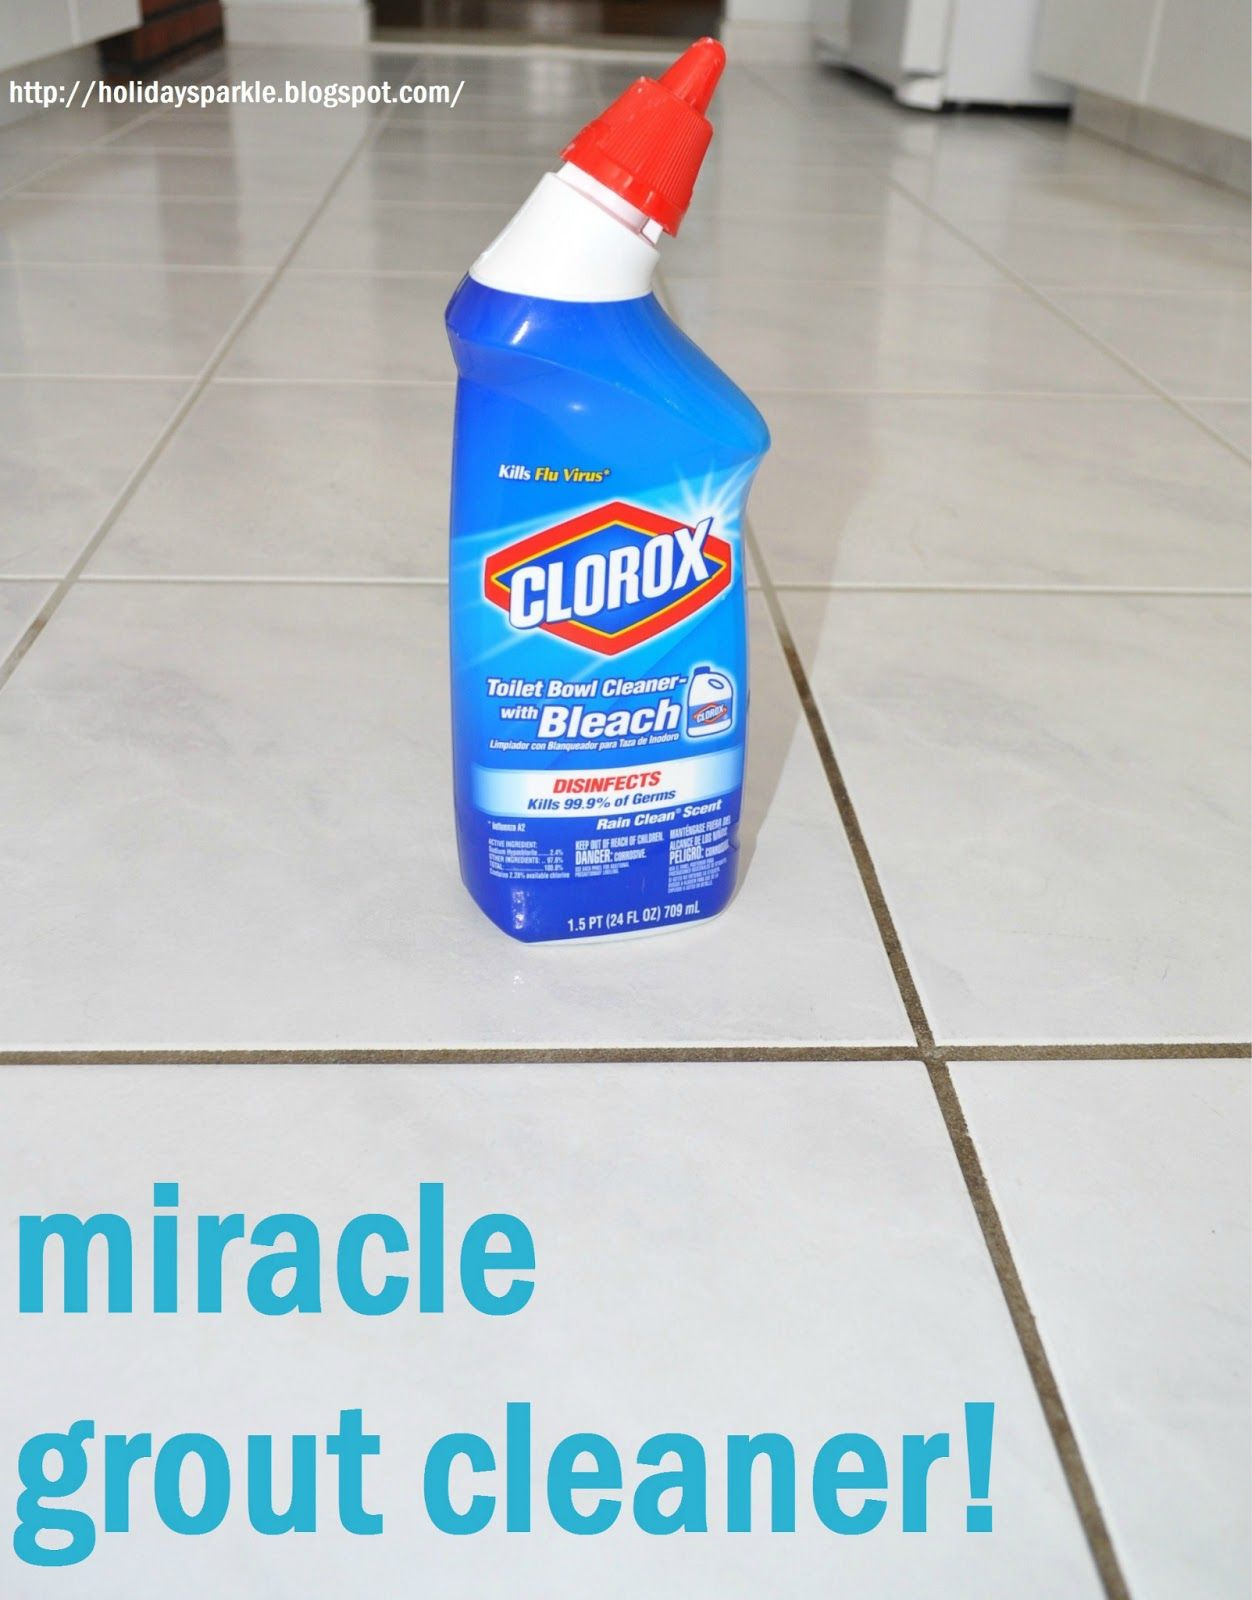 Clean Grout Clorox Toilet Bowl Cleaner With Bleach Gonna Try - Bleaching grout floor tiles